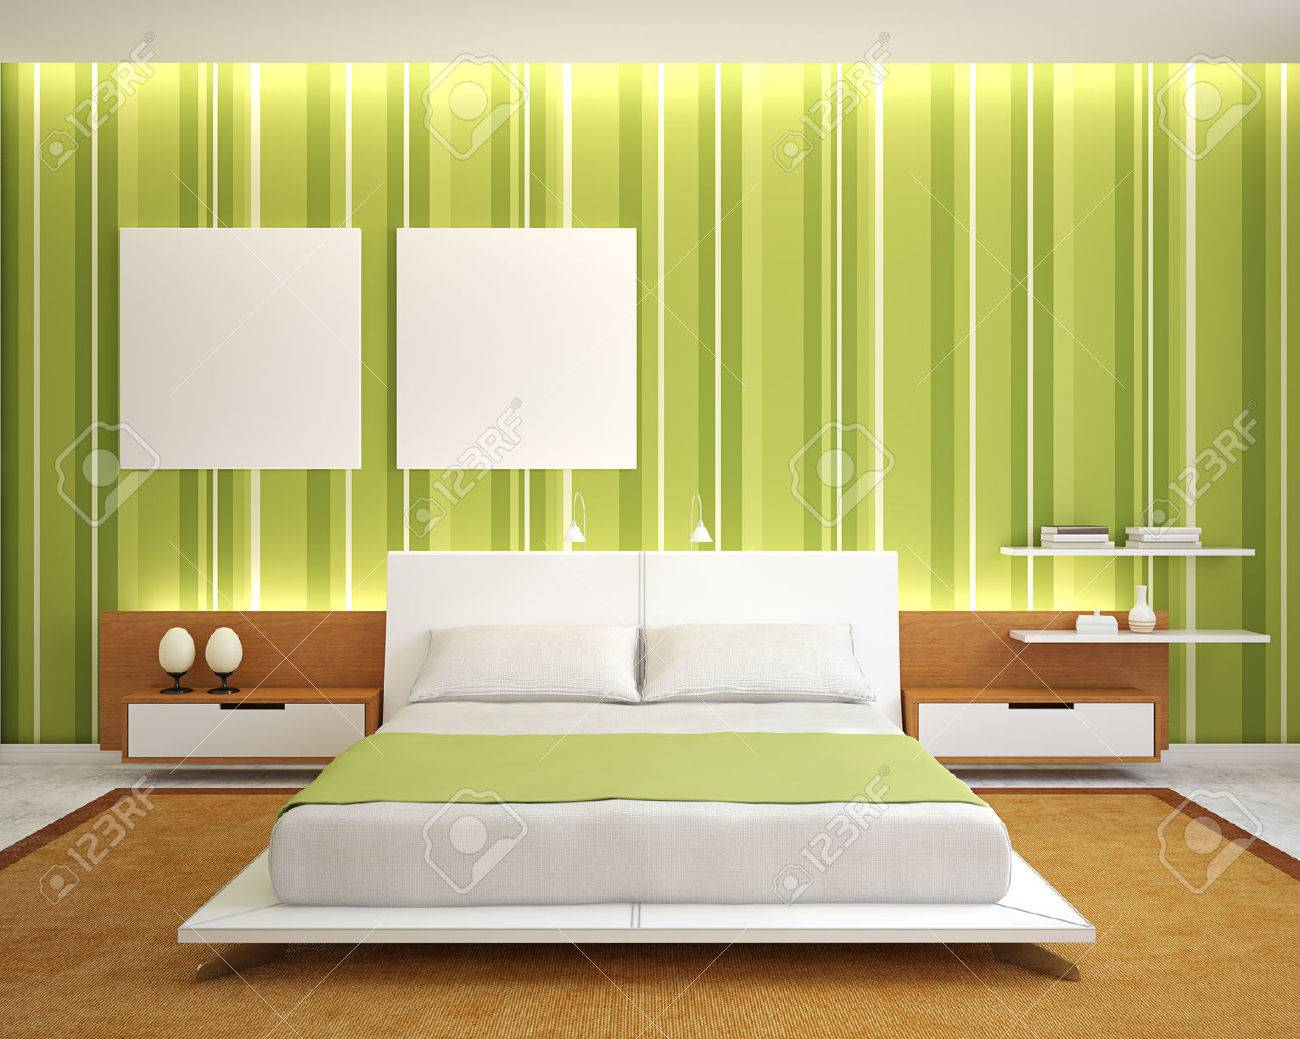 Modern Bedroom Interior With Green Walls And King-size Bed. 3d ...